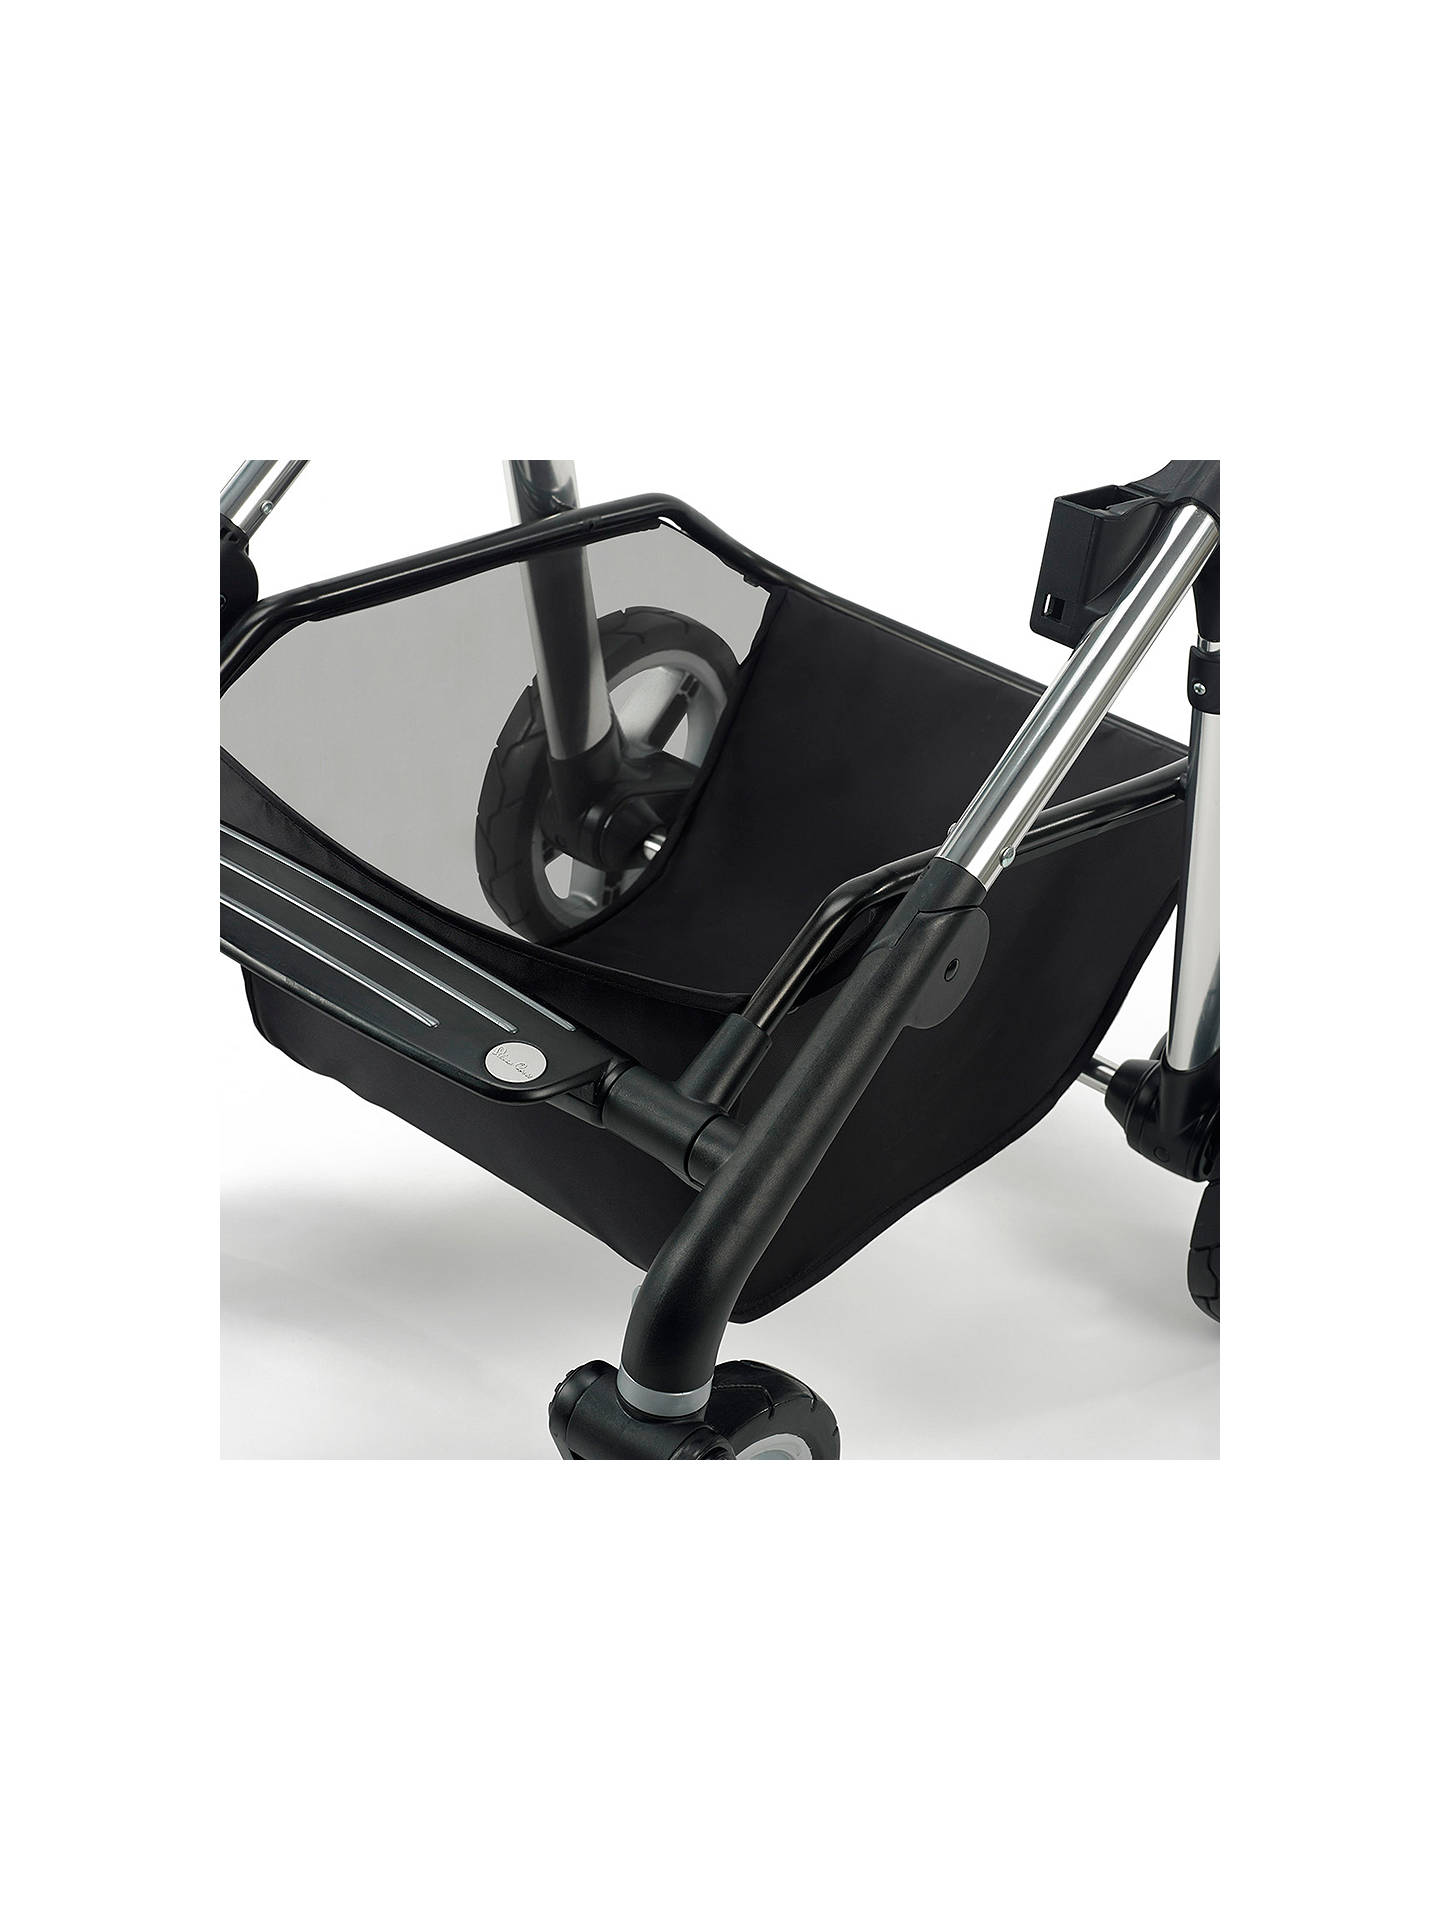 Buy Silver Cross Pioneer Pushchair Seat, Chassis and Carrycot, Chrome Online at johnlewis.com